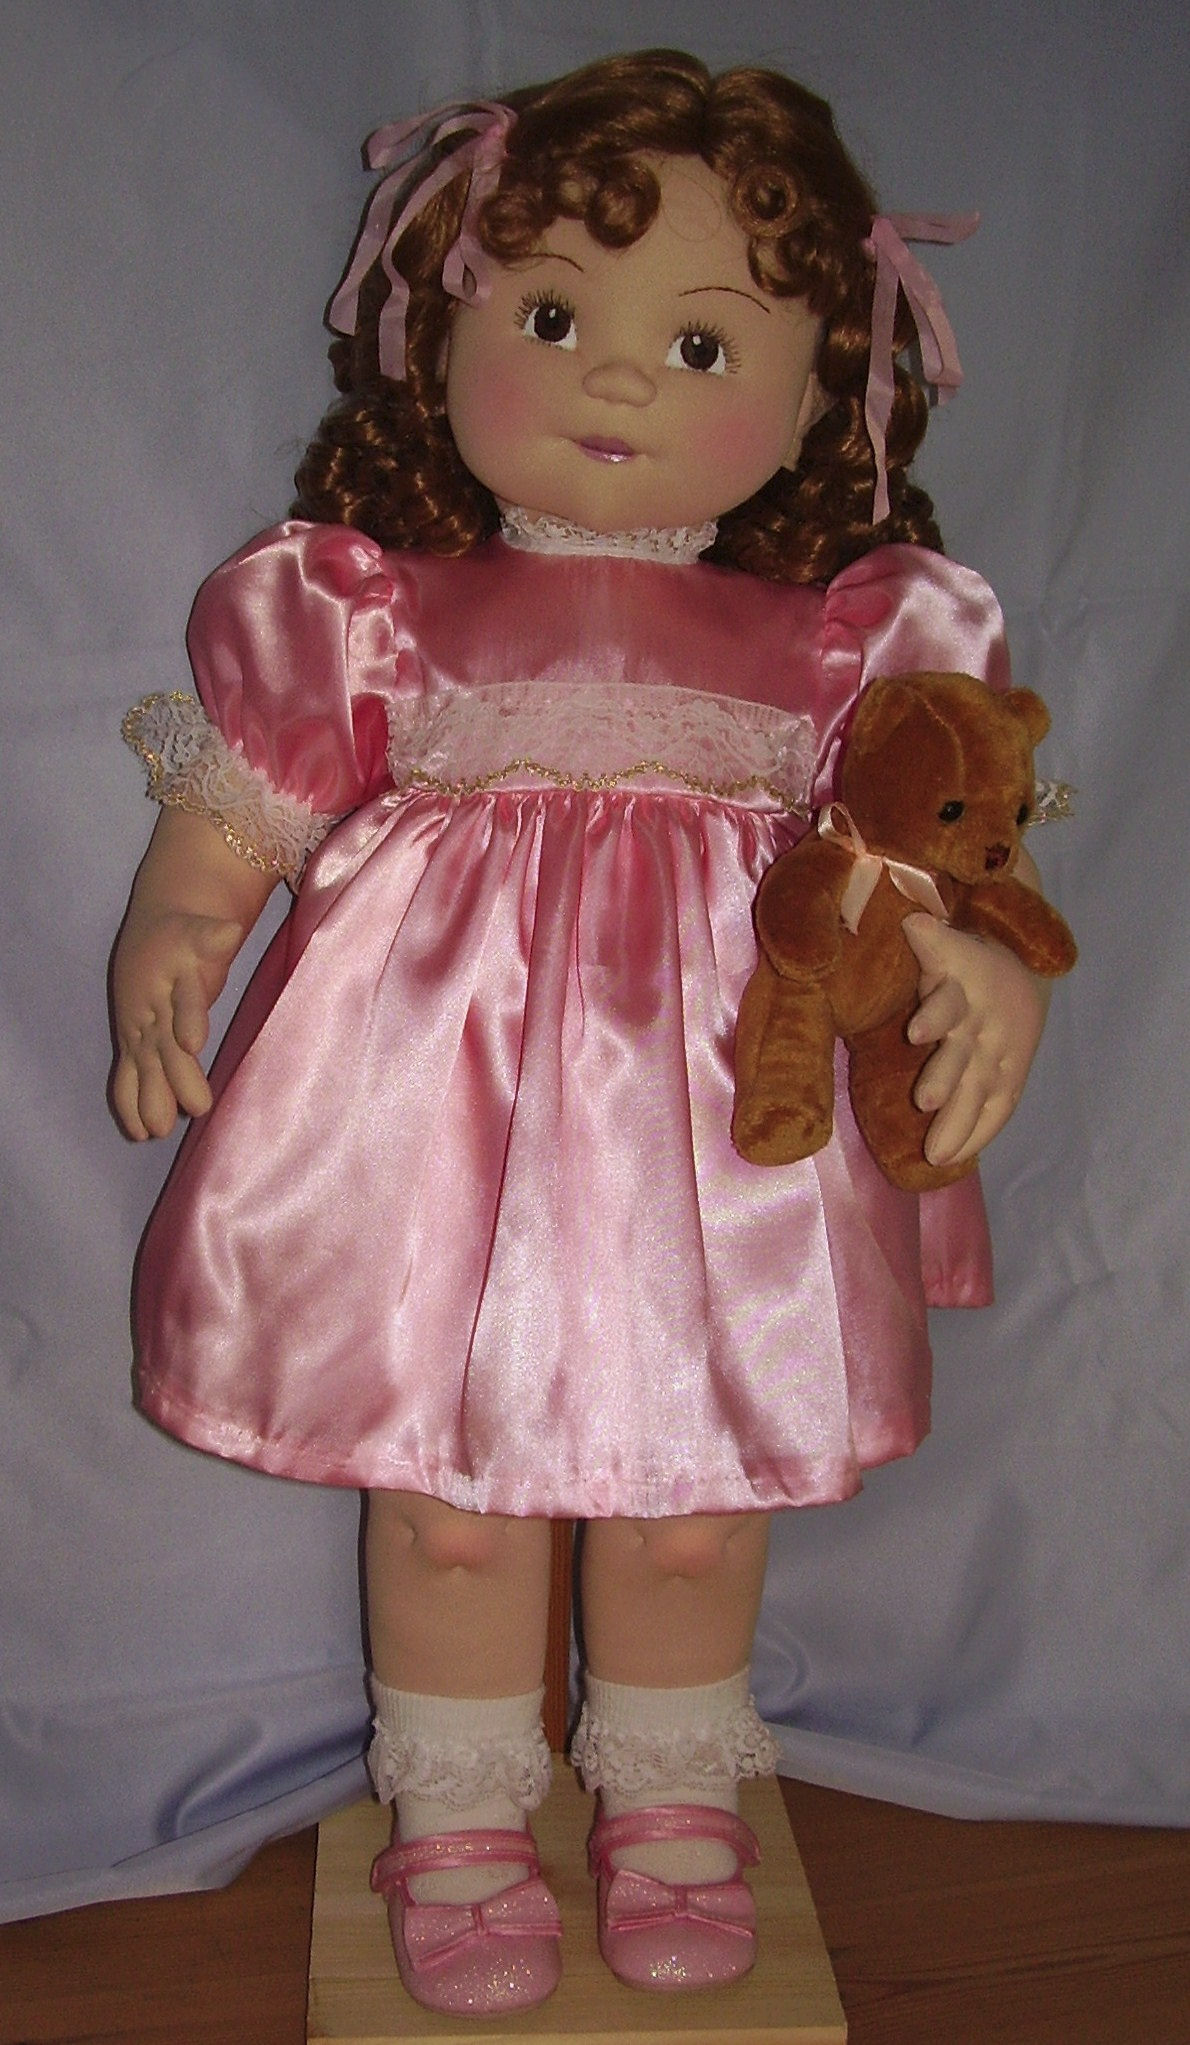 Intermediate CHILD Doll Category 2014 Cloth Child Doll Challenge